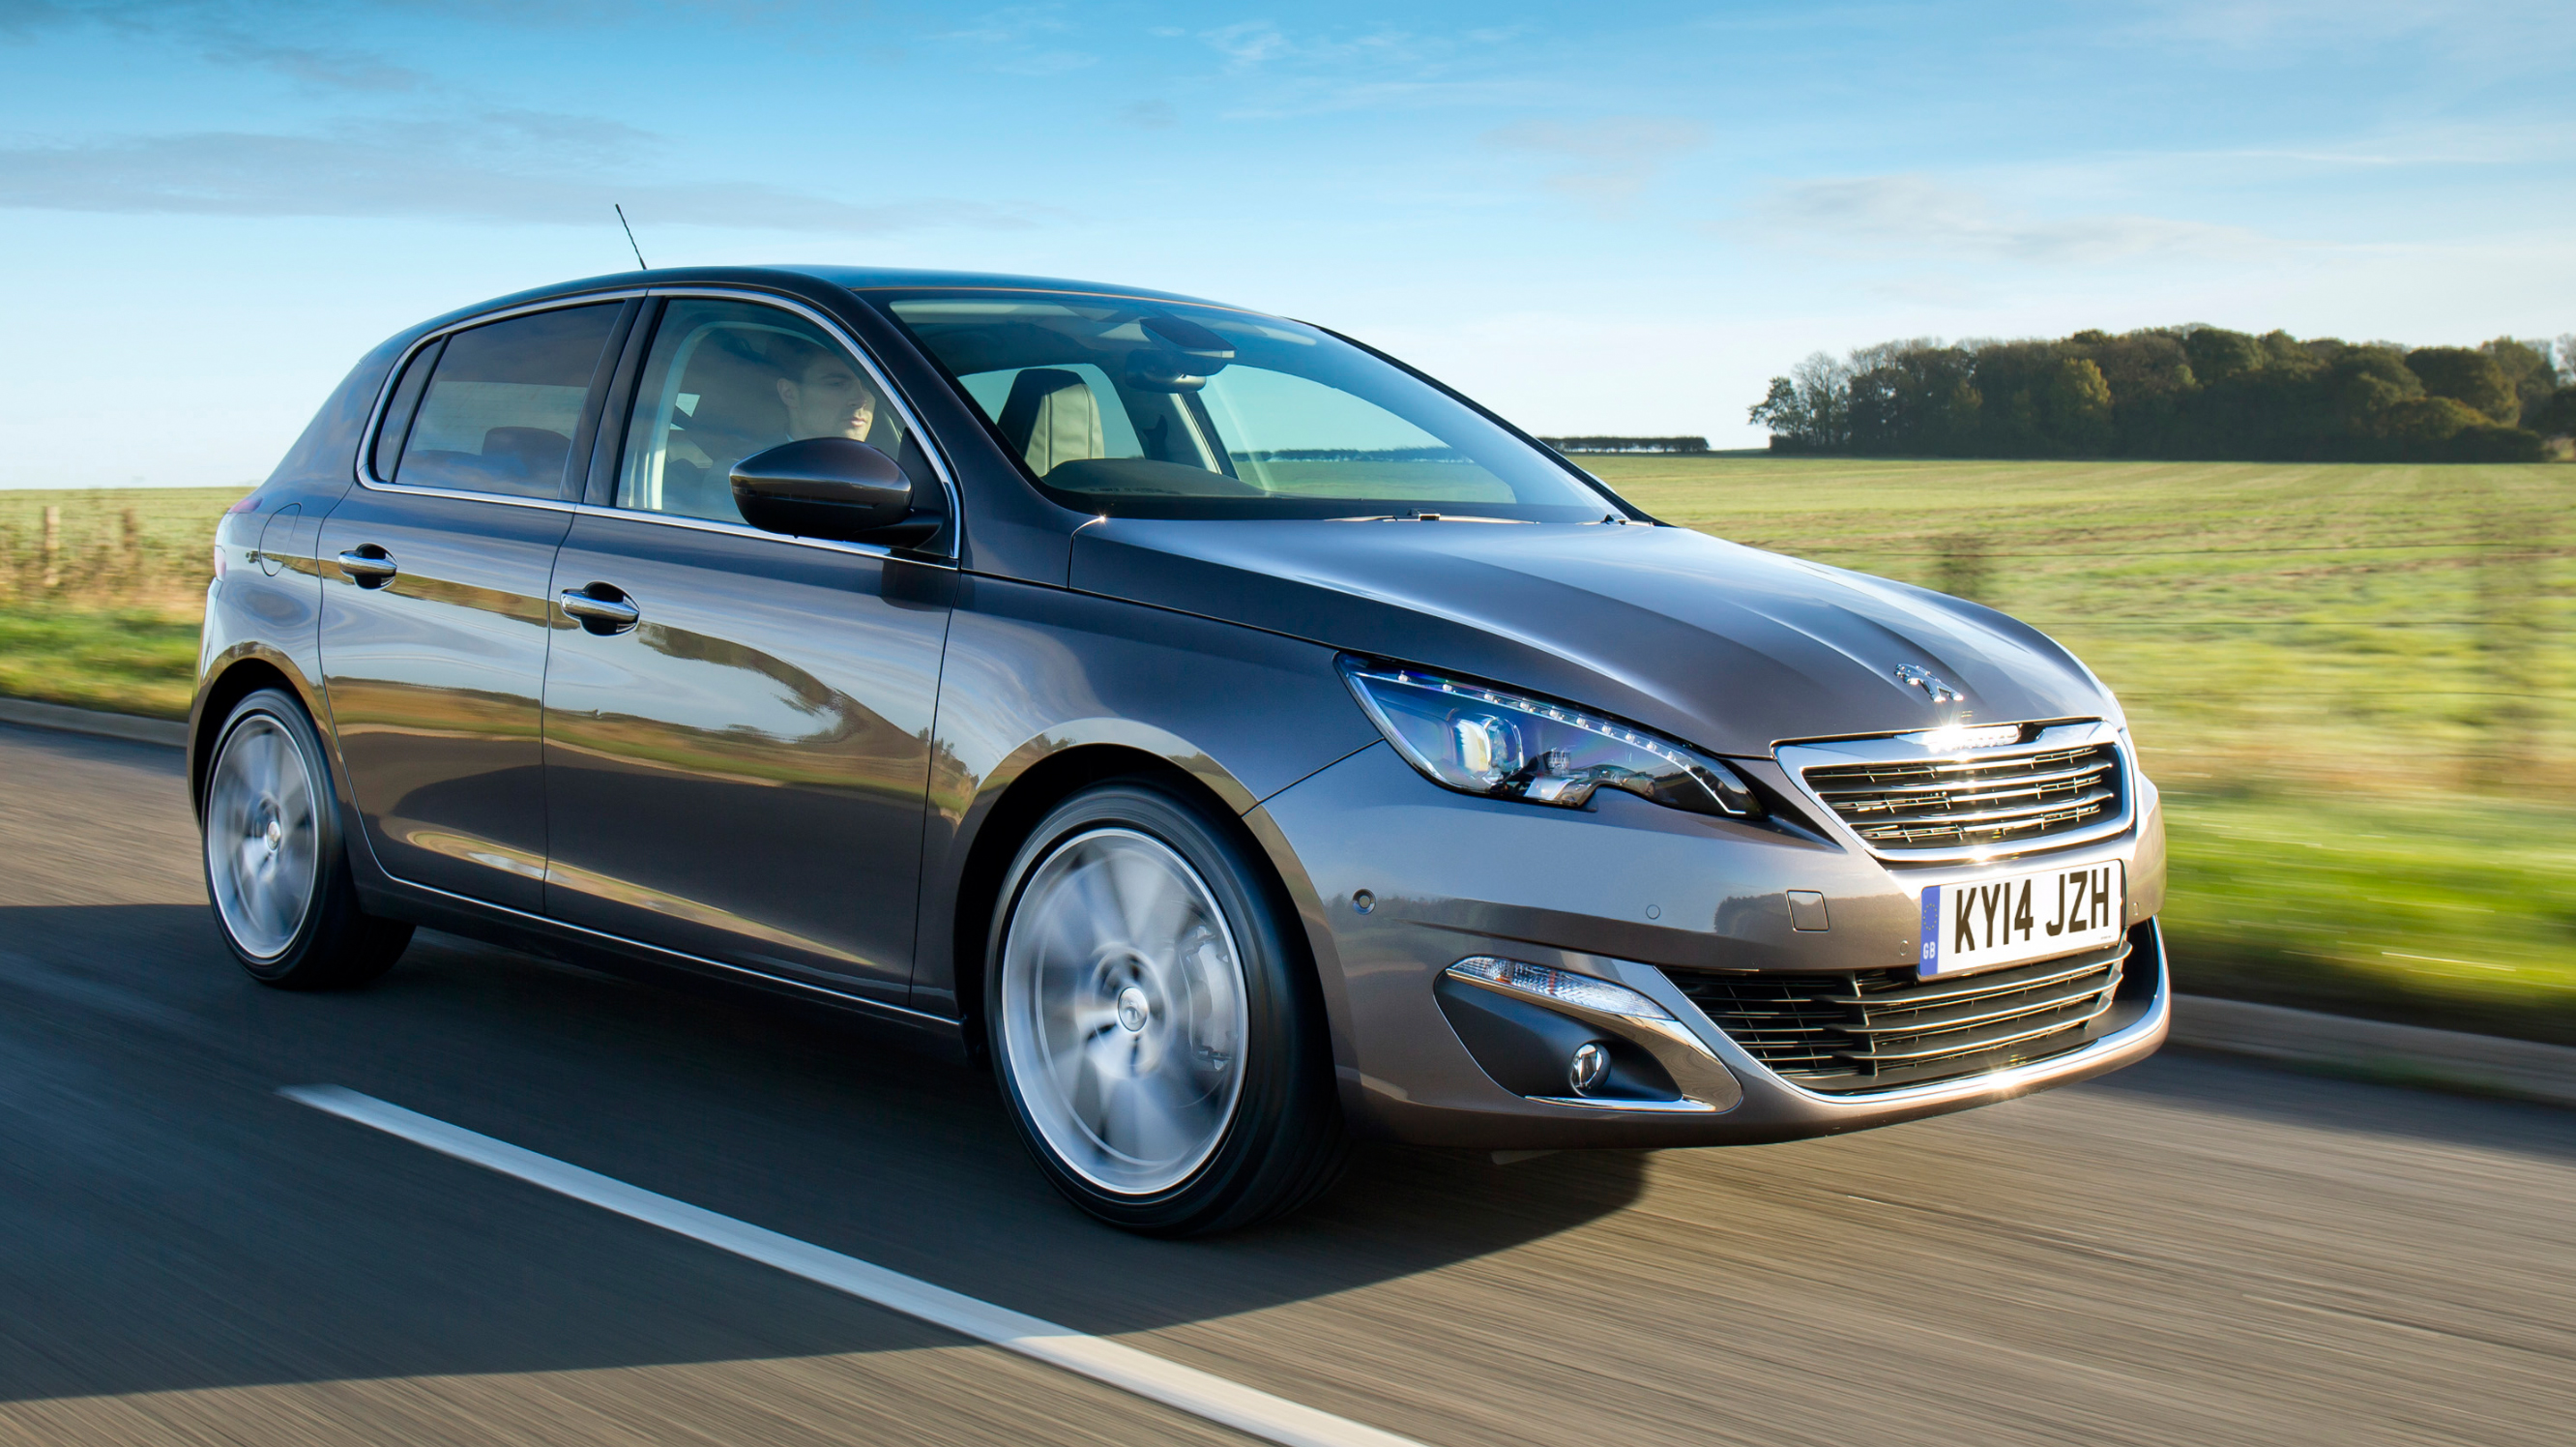 2017 Peugeot 308 Review | Top Gear